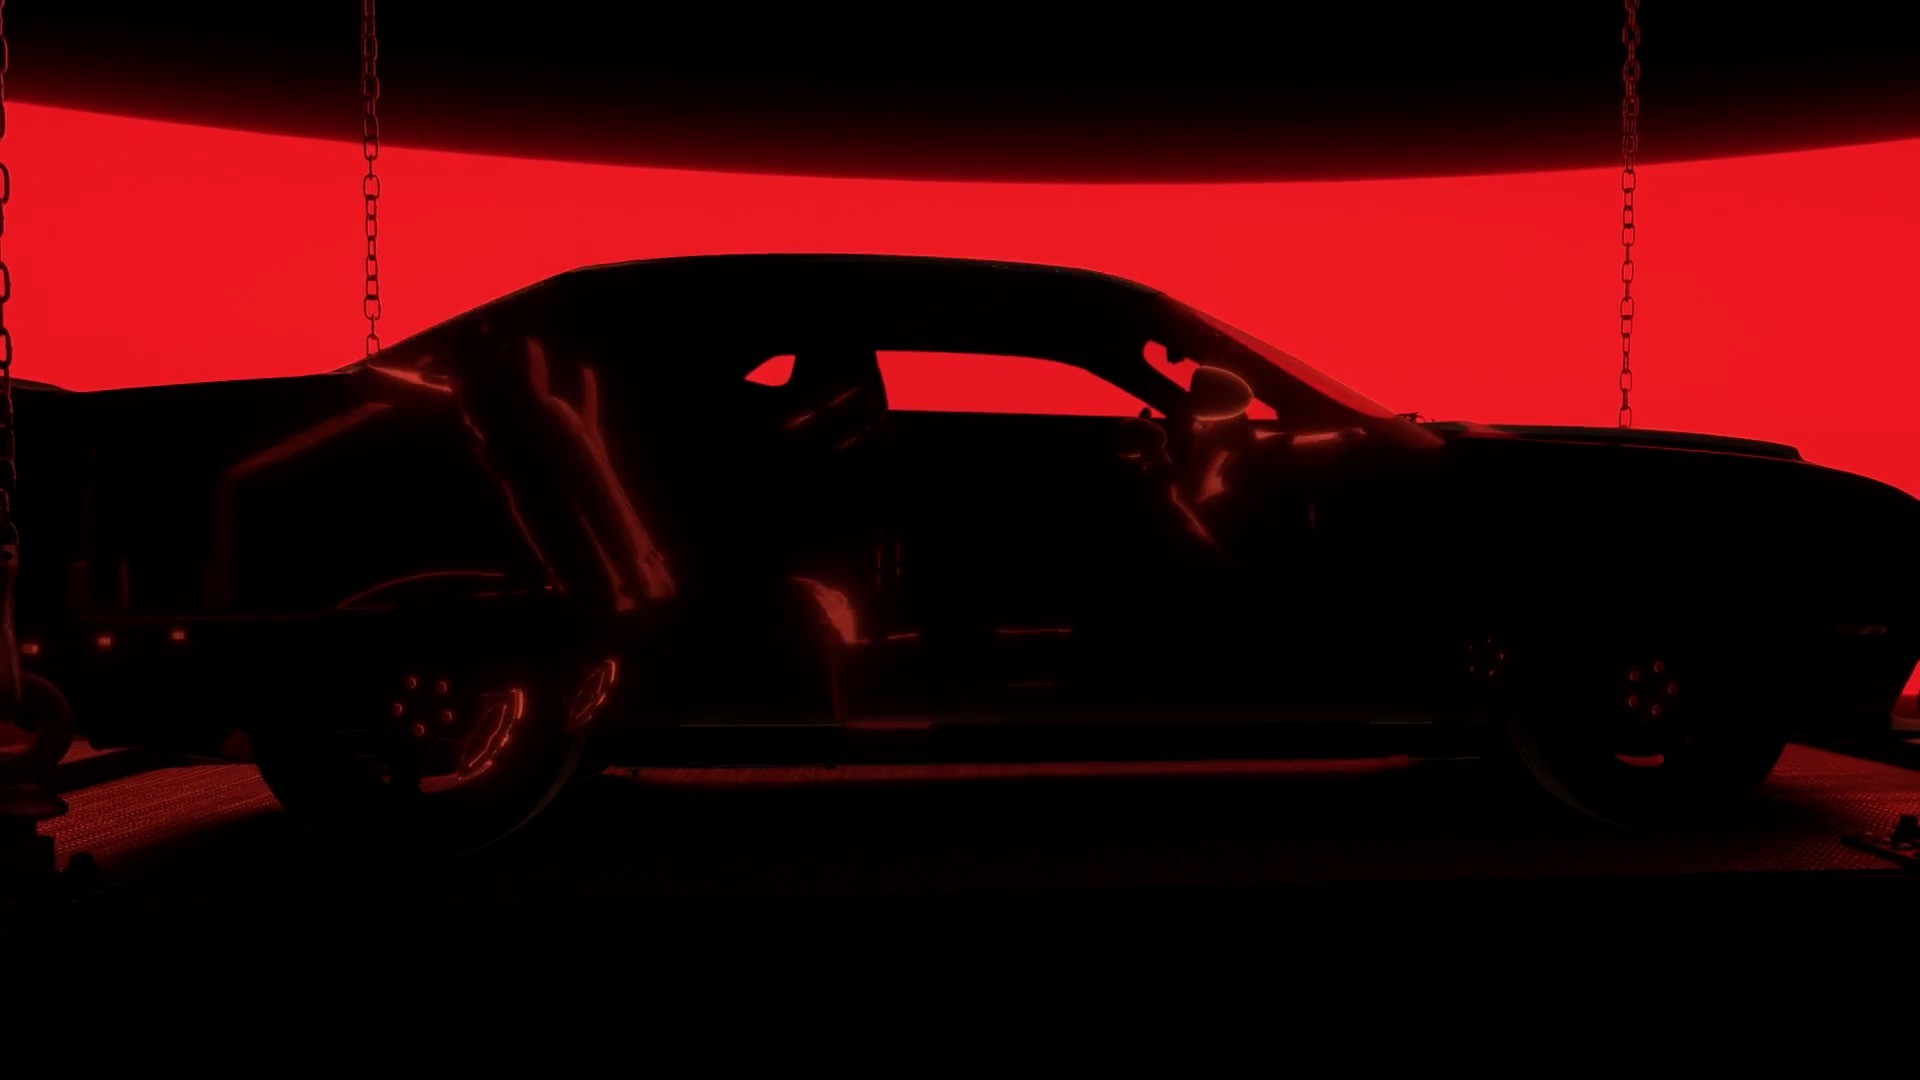 2017 Dodge Durango Concept Srt8 Srt Rt further Jaguar F Type as well Could These Be The First Spy Photos Of The 2018 Dodge Challenger Srt Demon 114782 in addition Could These Be The First Spy Photos Of The 2018 Dodge Challenger Srt Demon 114782 in addition 2008 Dodge Durango Sxt 4x4. on 2015 dodge avenger awd